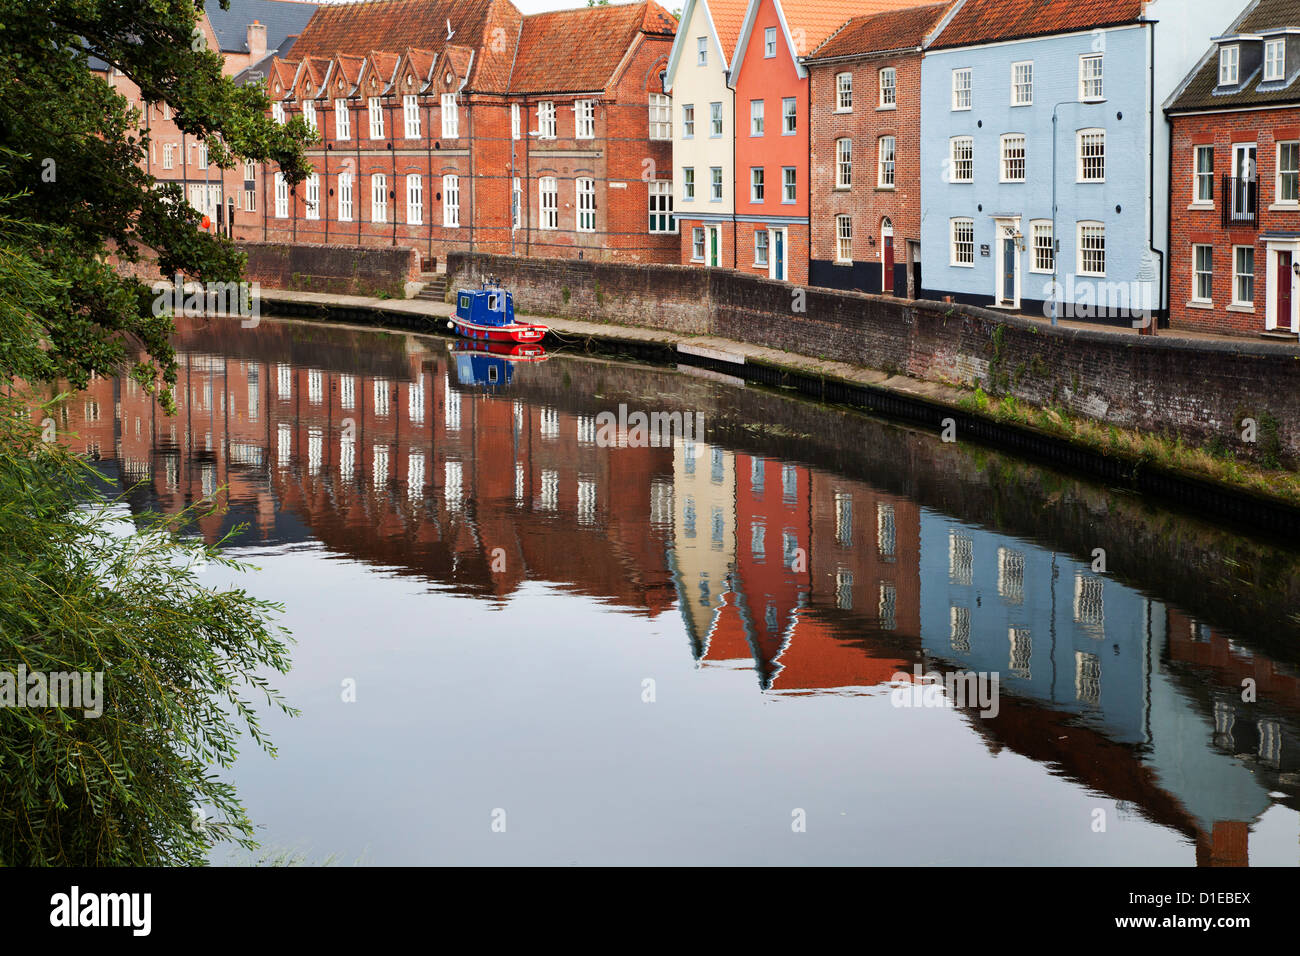 Quayside buildings reflected in the River Wensum, Norwich, Norfolk, England, United Kingdom, Europe - Stock Image